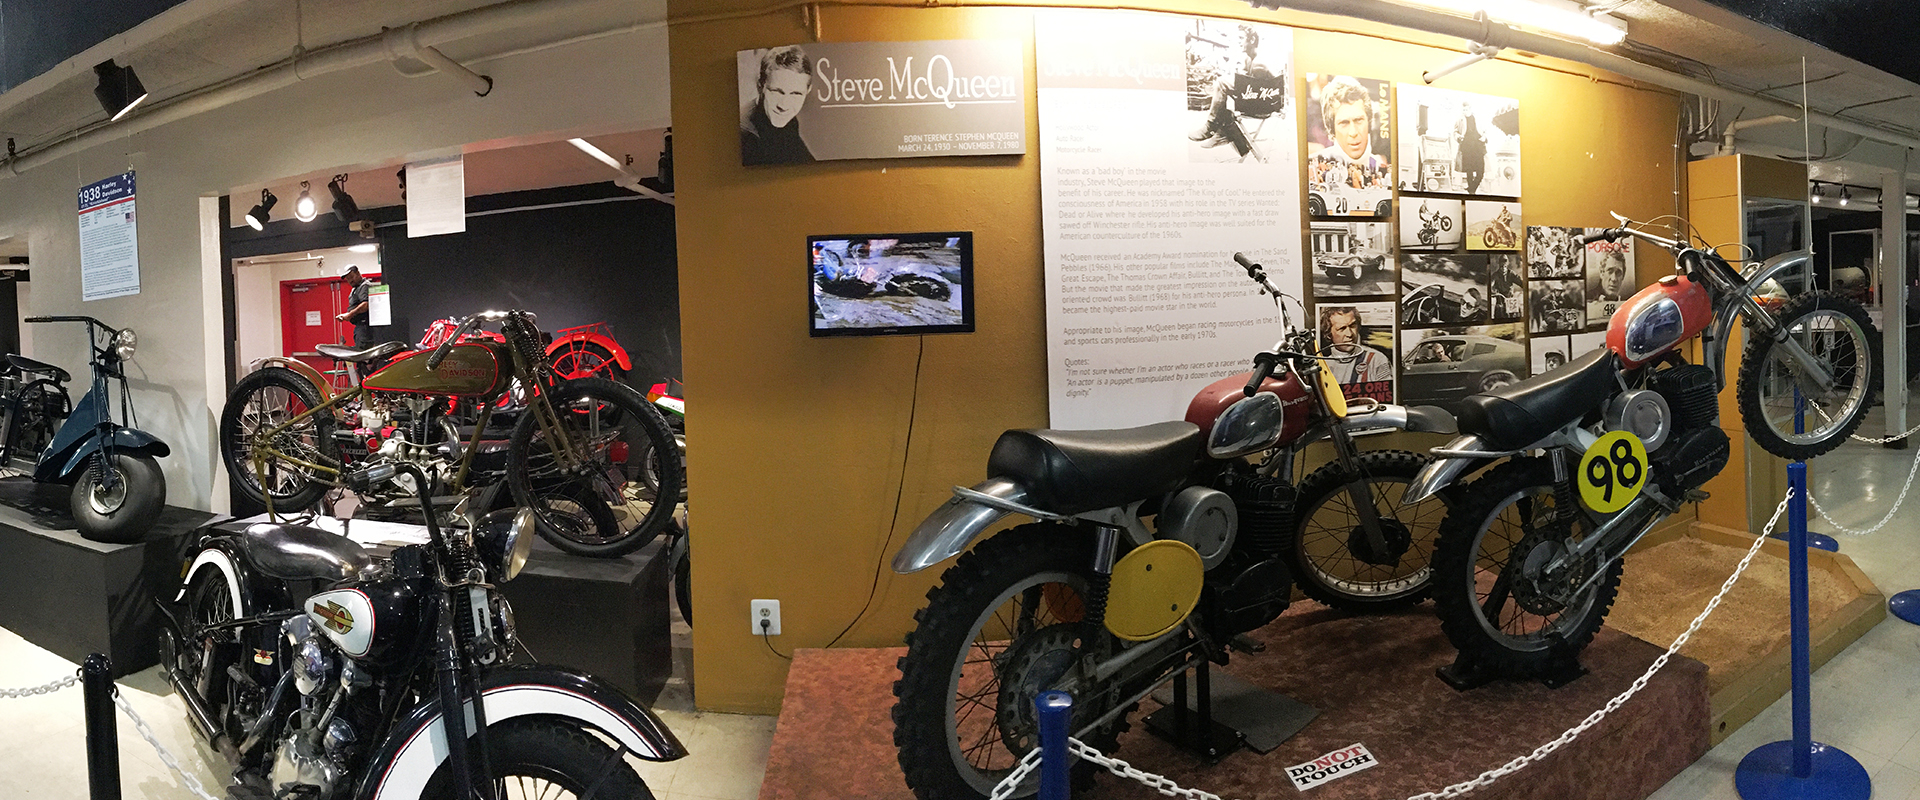 Automotive Museum motorcycles